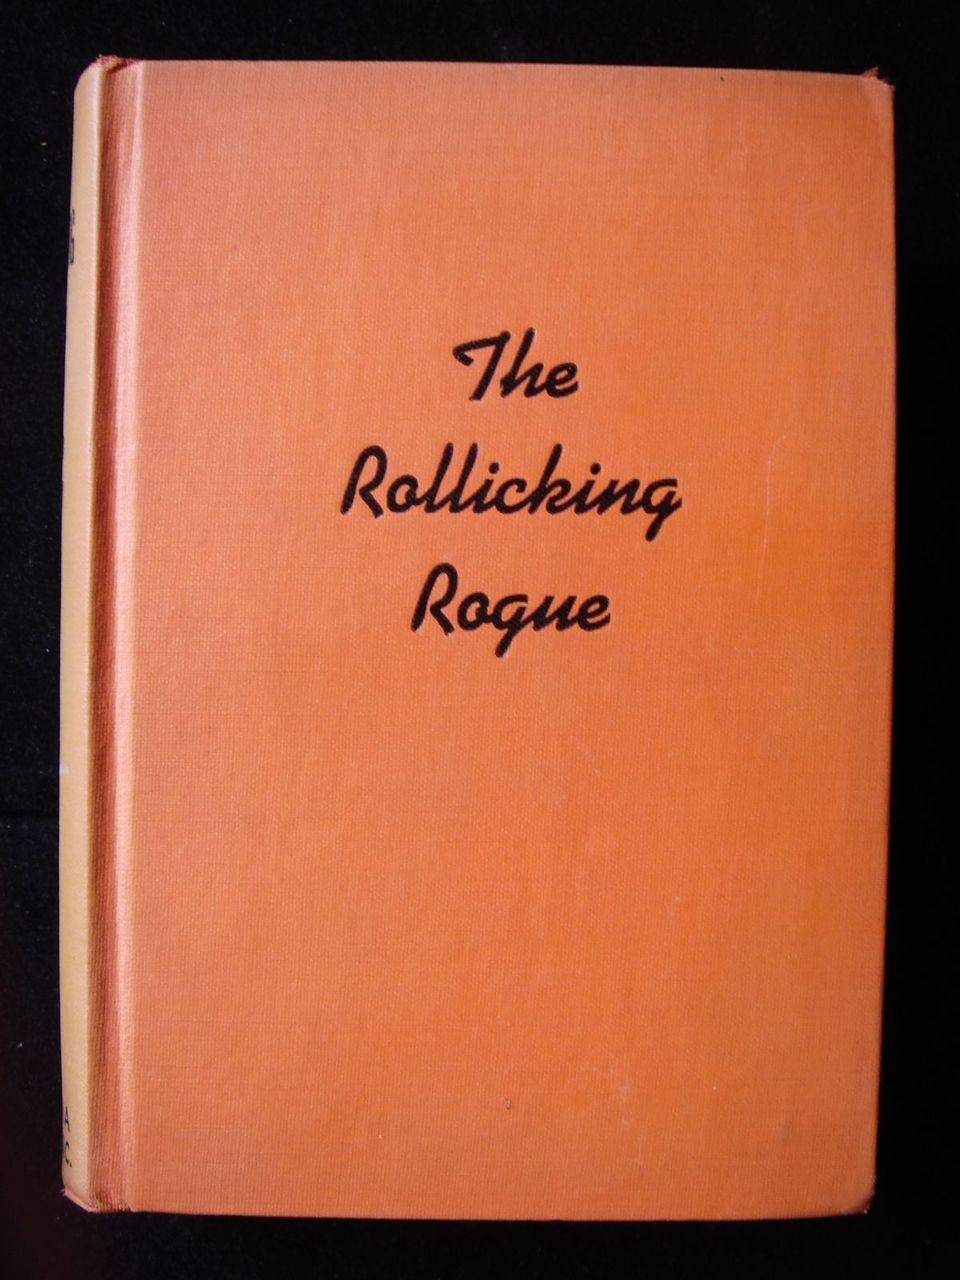 THE ROLLICKING ROGUE, by Johnston McCulley - 1941 [1st Ed]